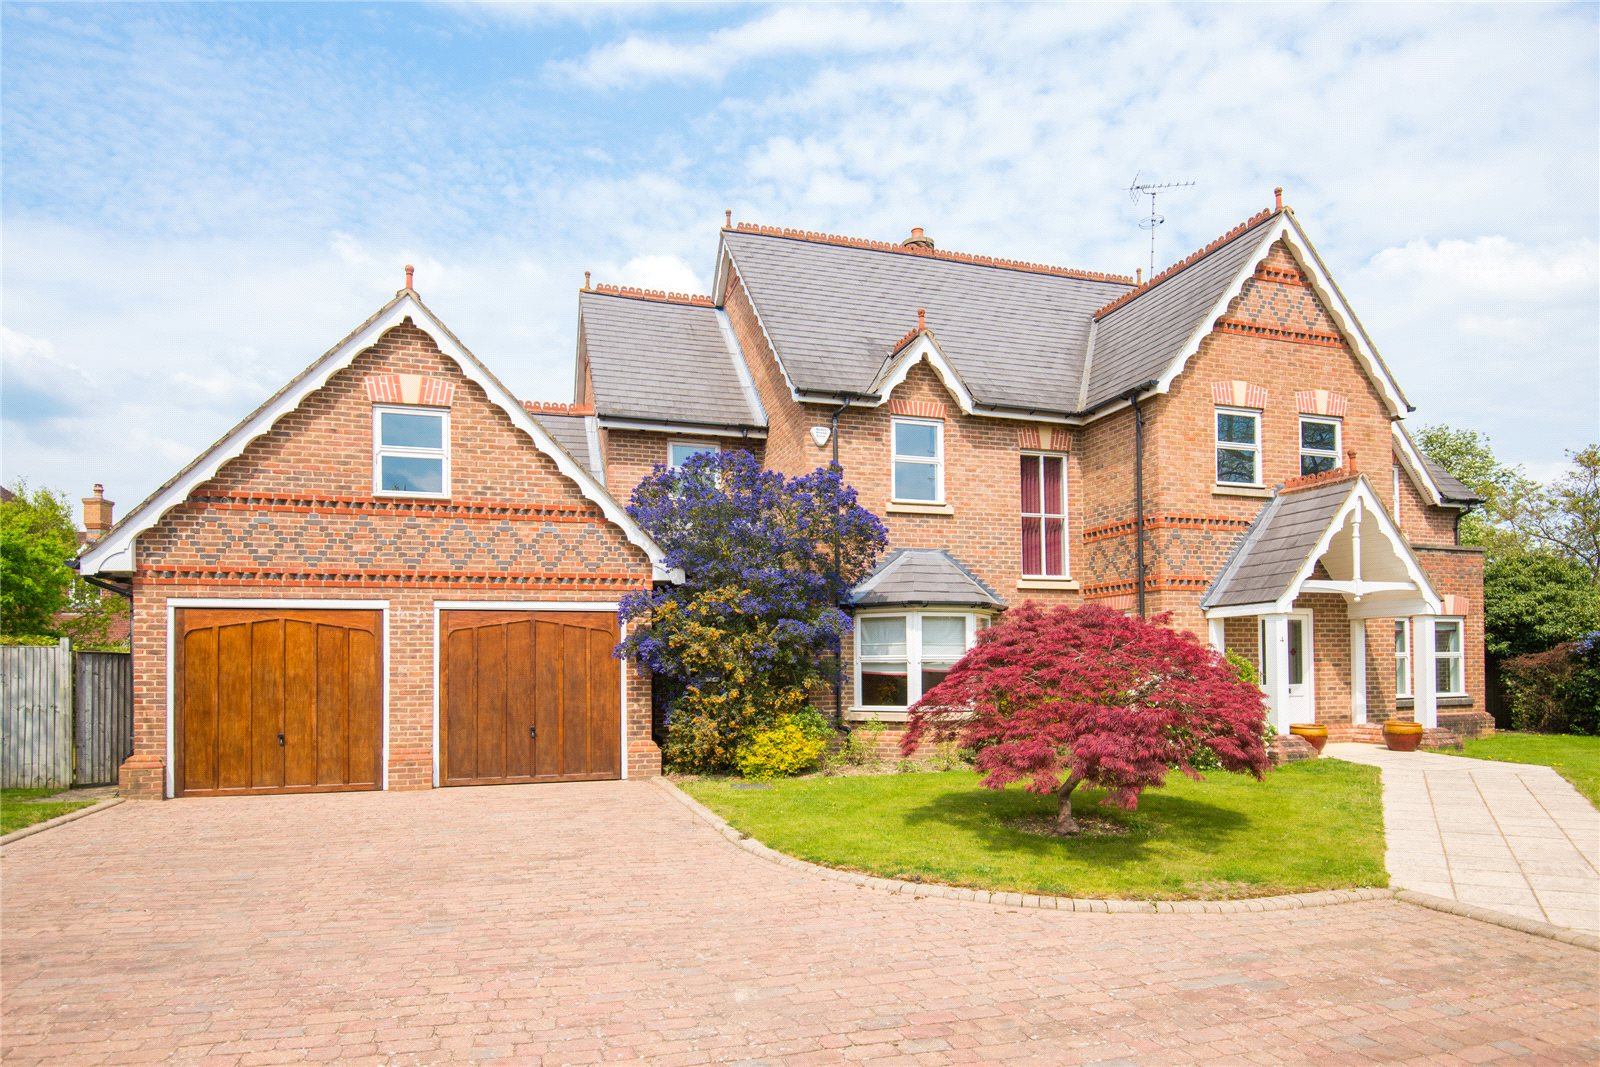 Villa per Vendita alle ore Stoneyfield, Gerrards Cross, Buckinghamshire, SL9 Gerrards Cross, Inghilterra